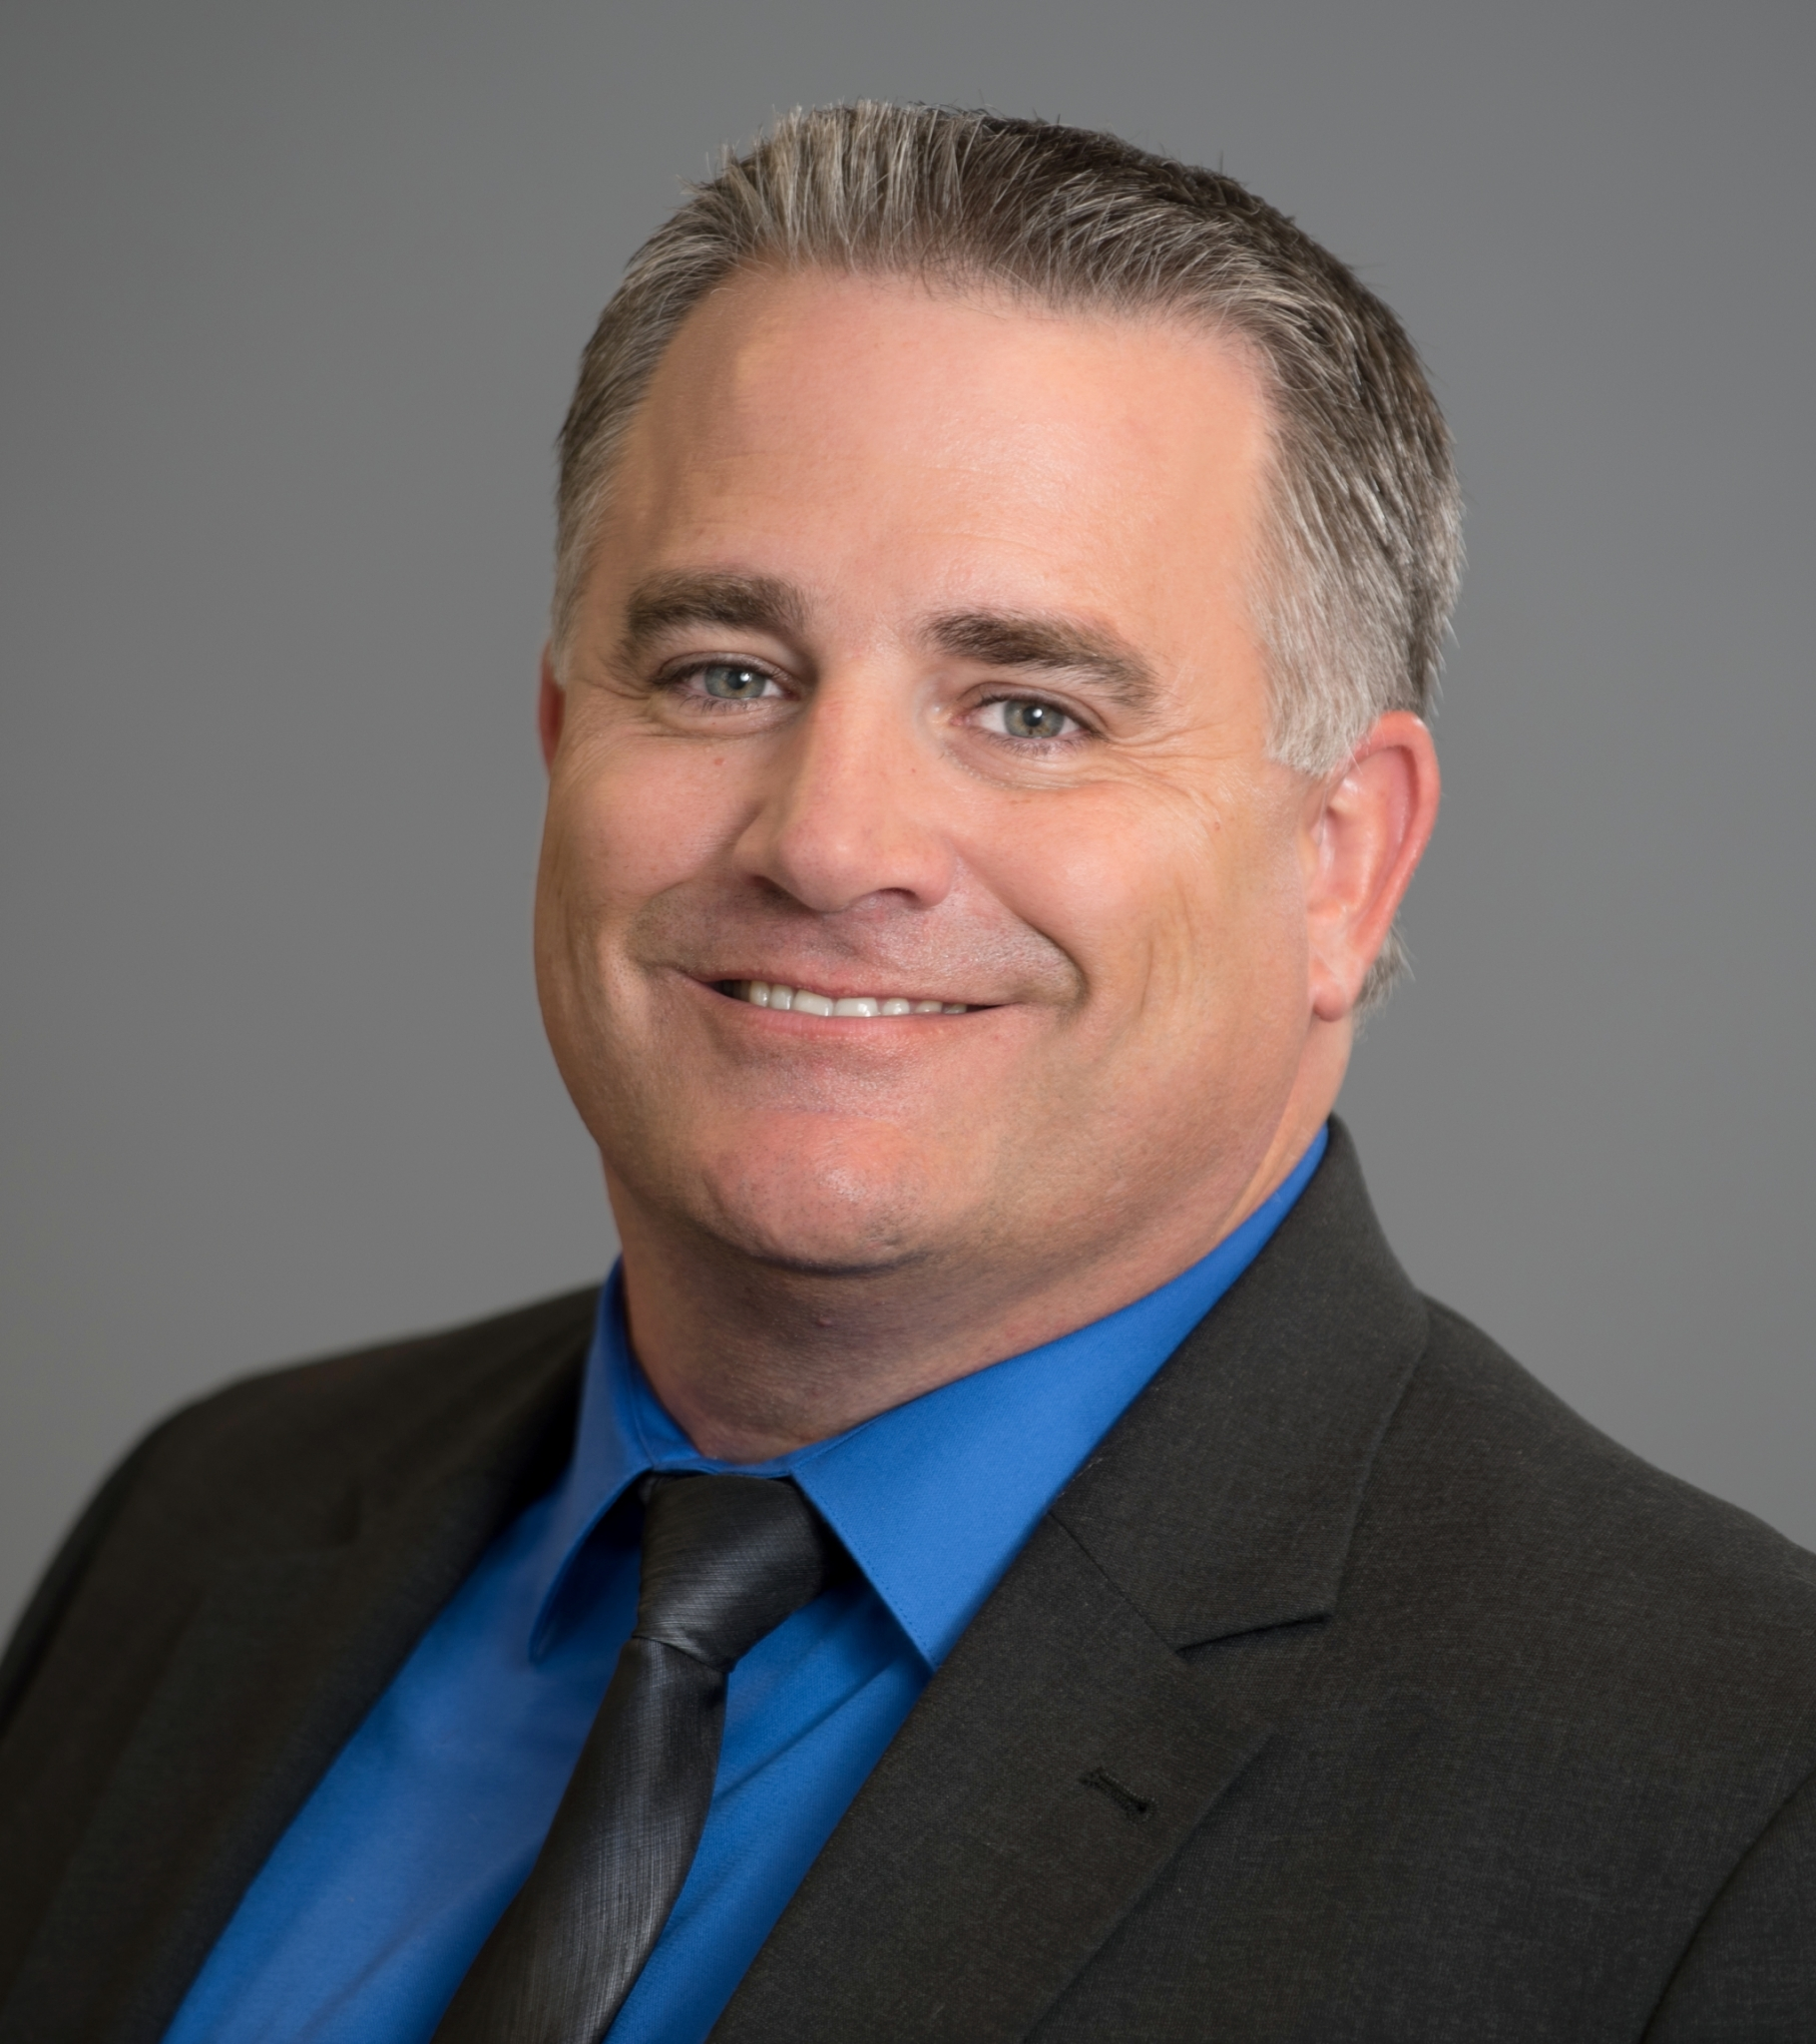 Headshot of John Guidry, Director of Maintenance